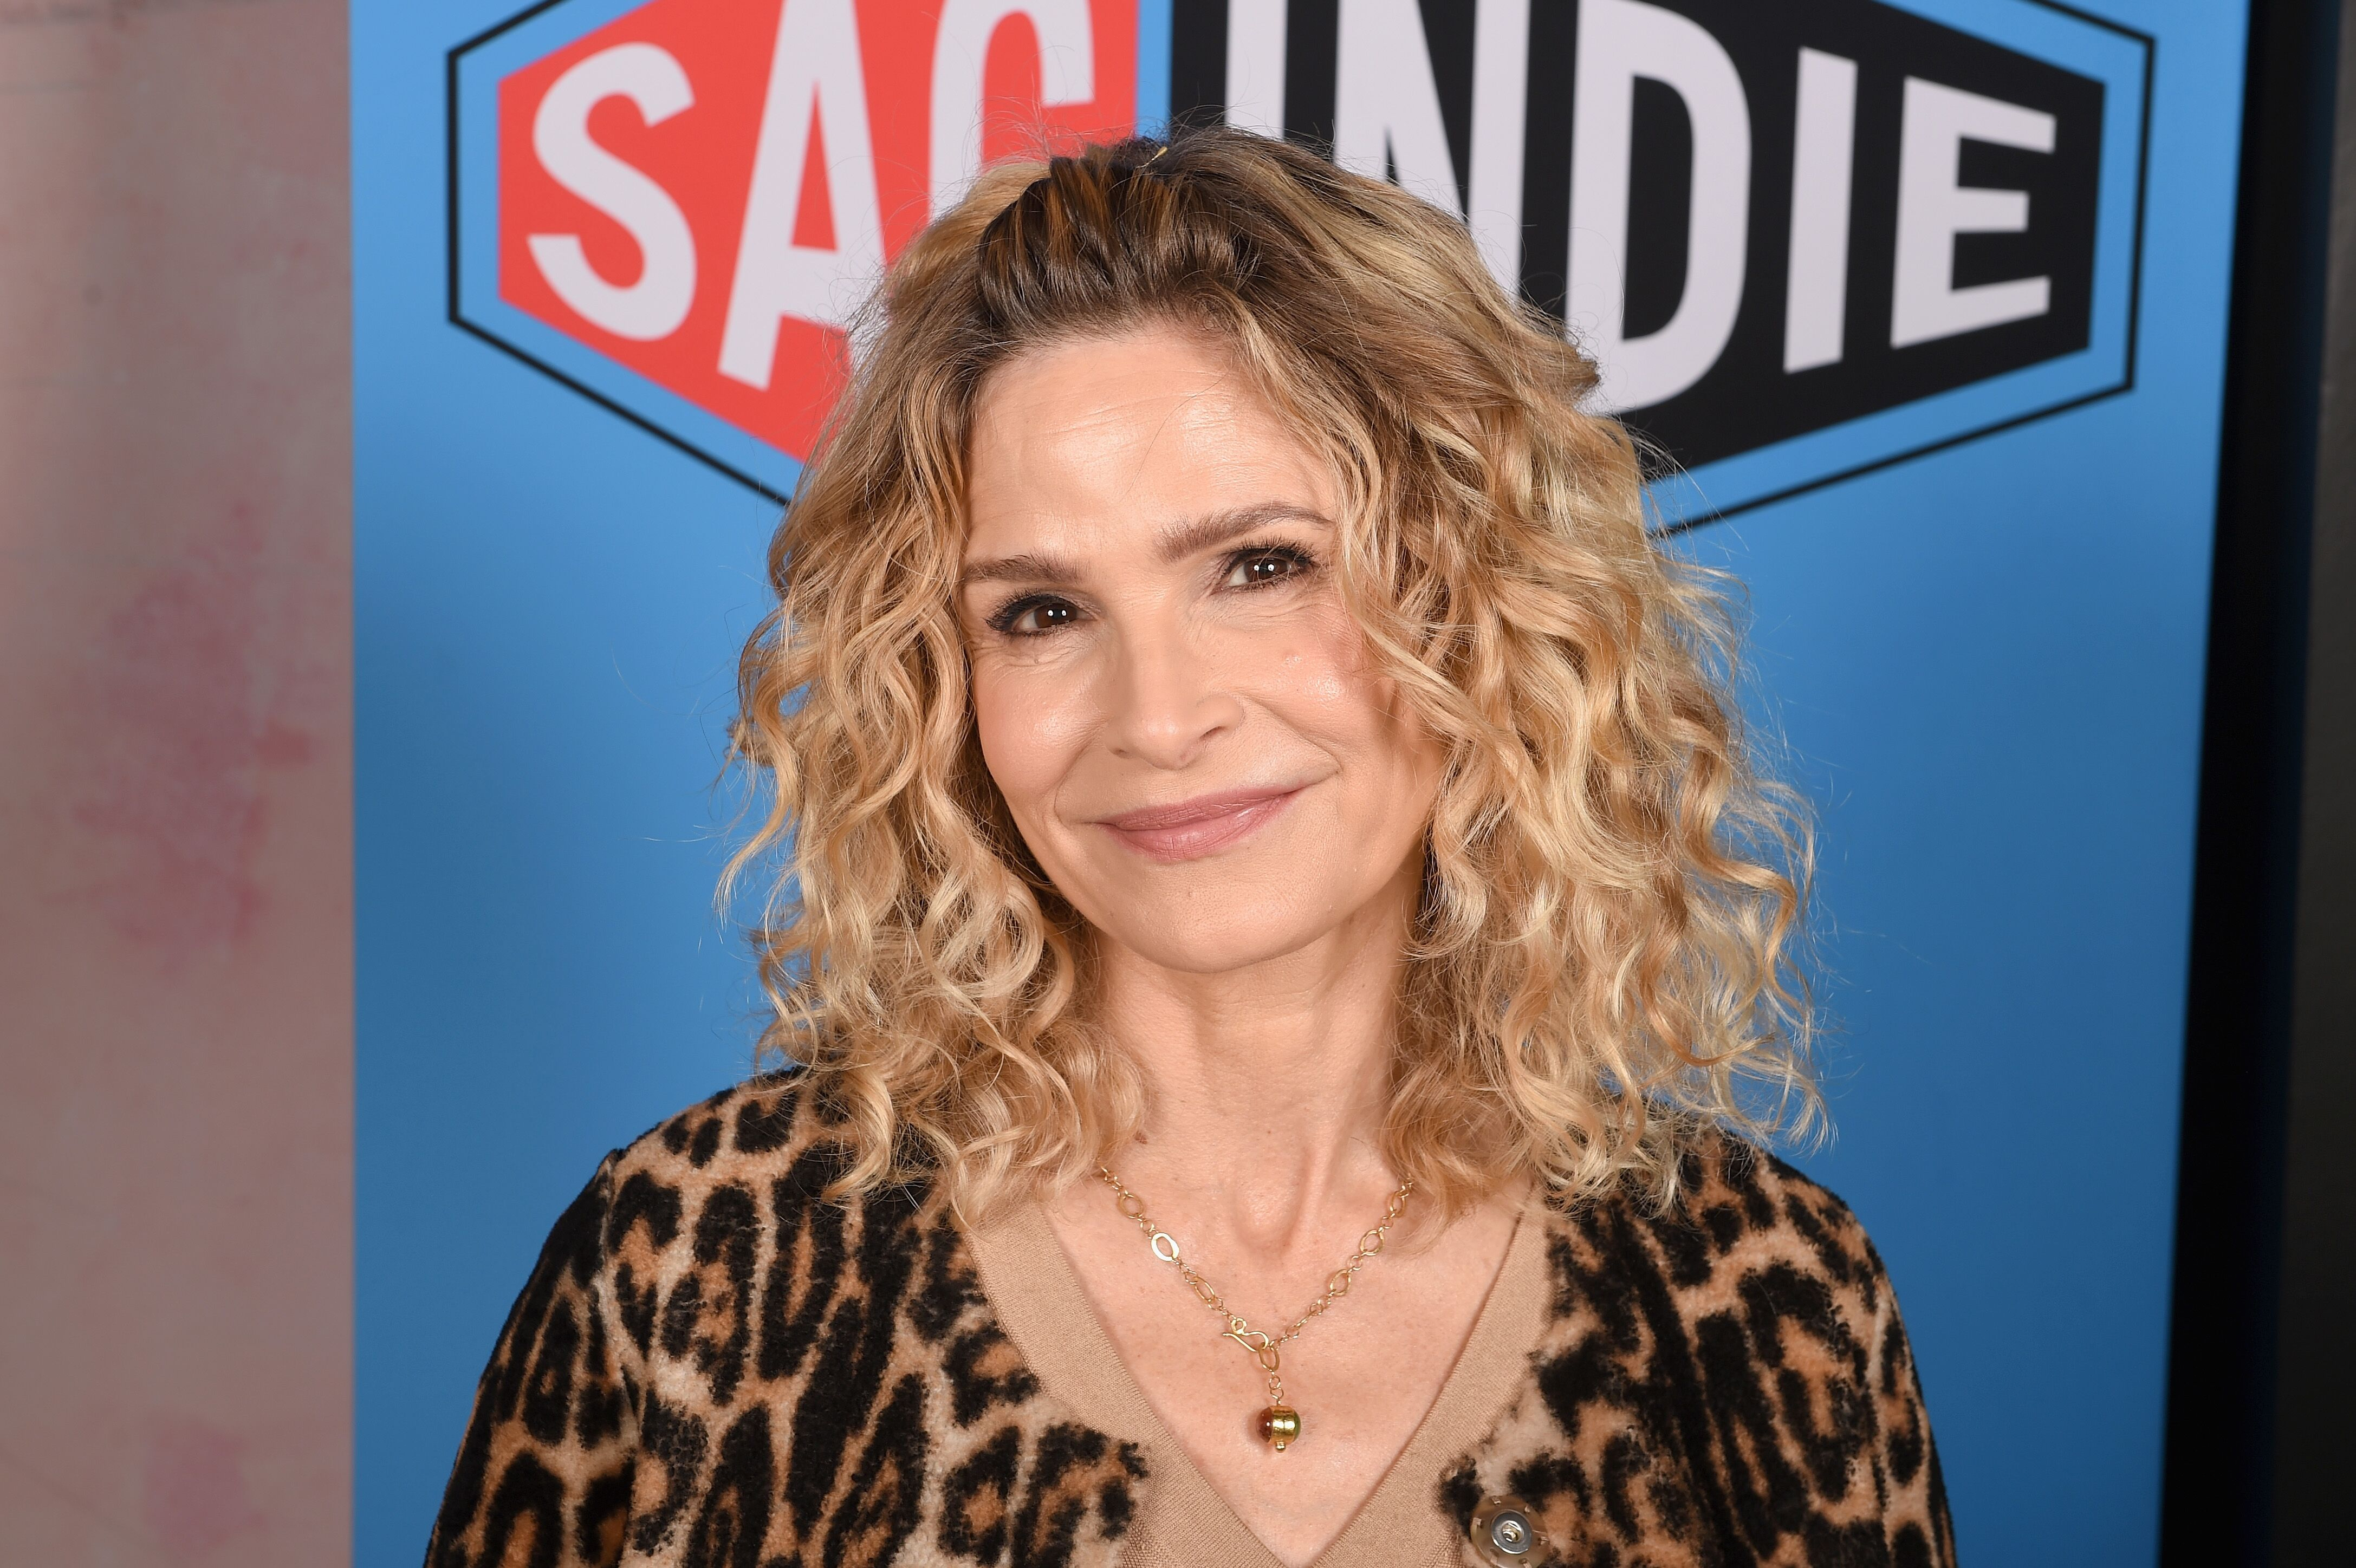 Actor Kyra Sedgwick attends the SAGindie Sundance Filmmakers Reception at Cafe Terigo on January 28, 2019 | Photo: Getty Images